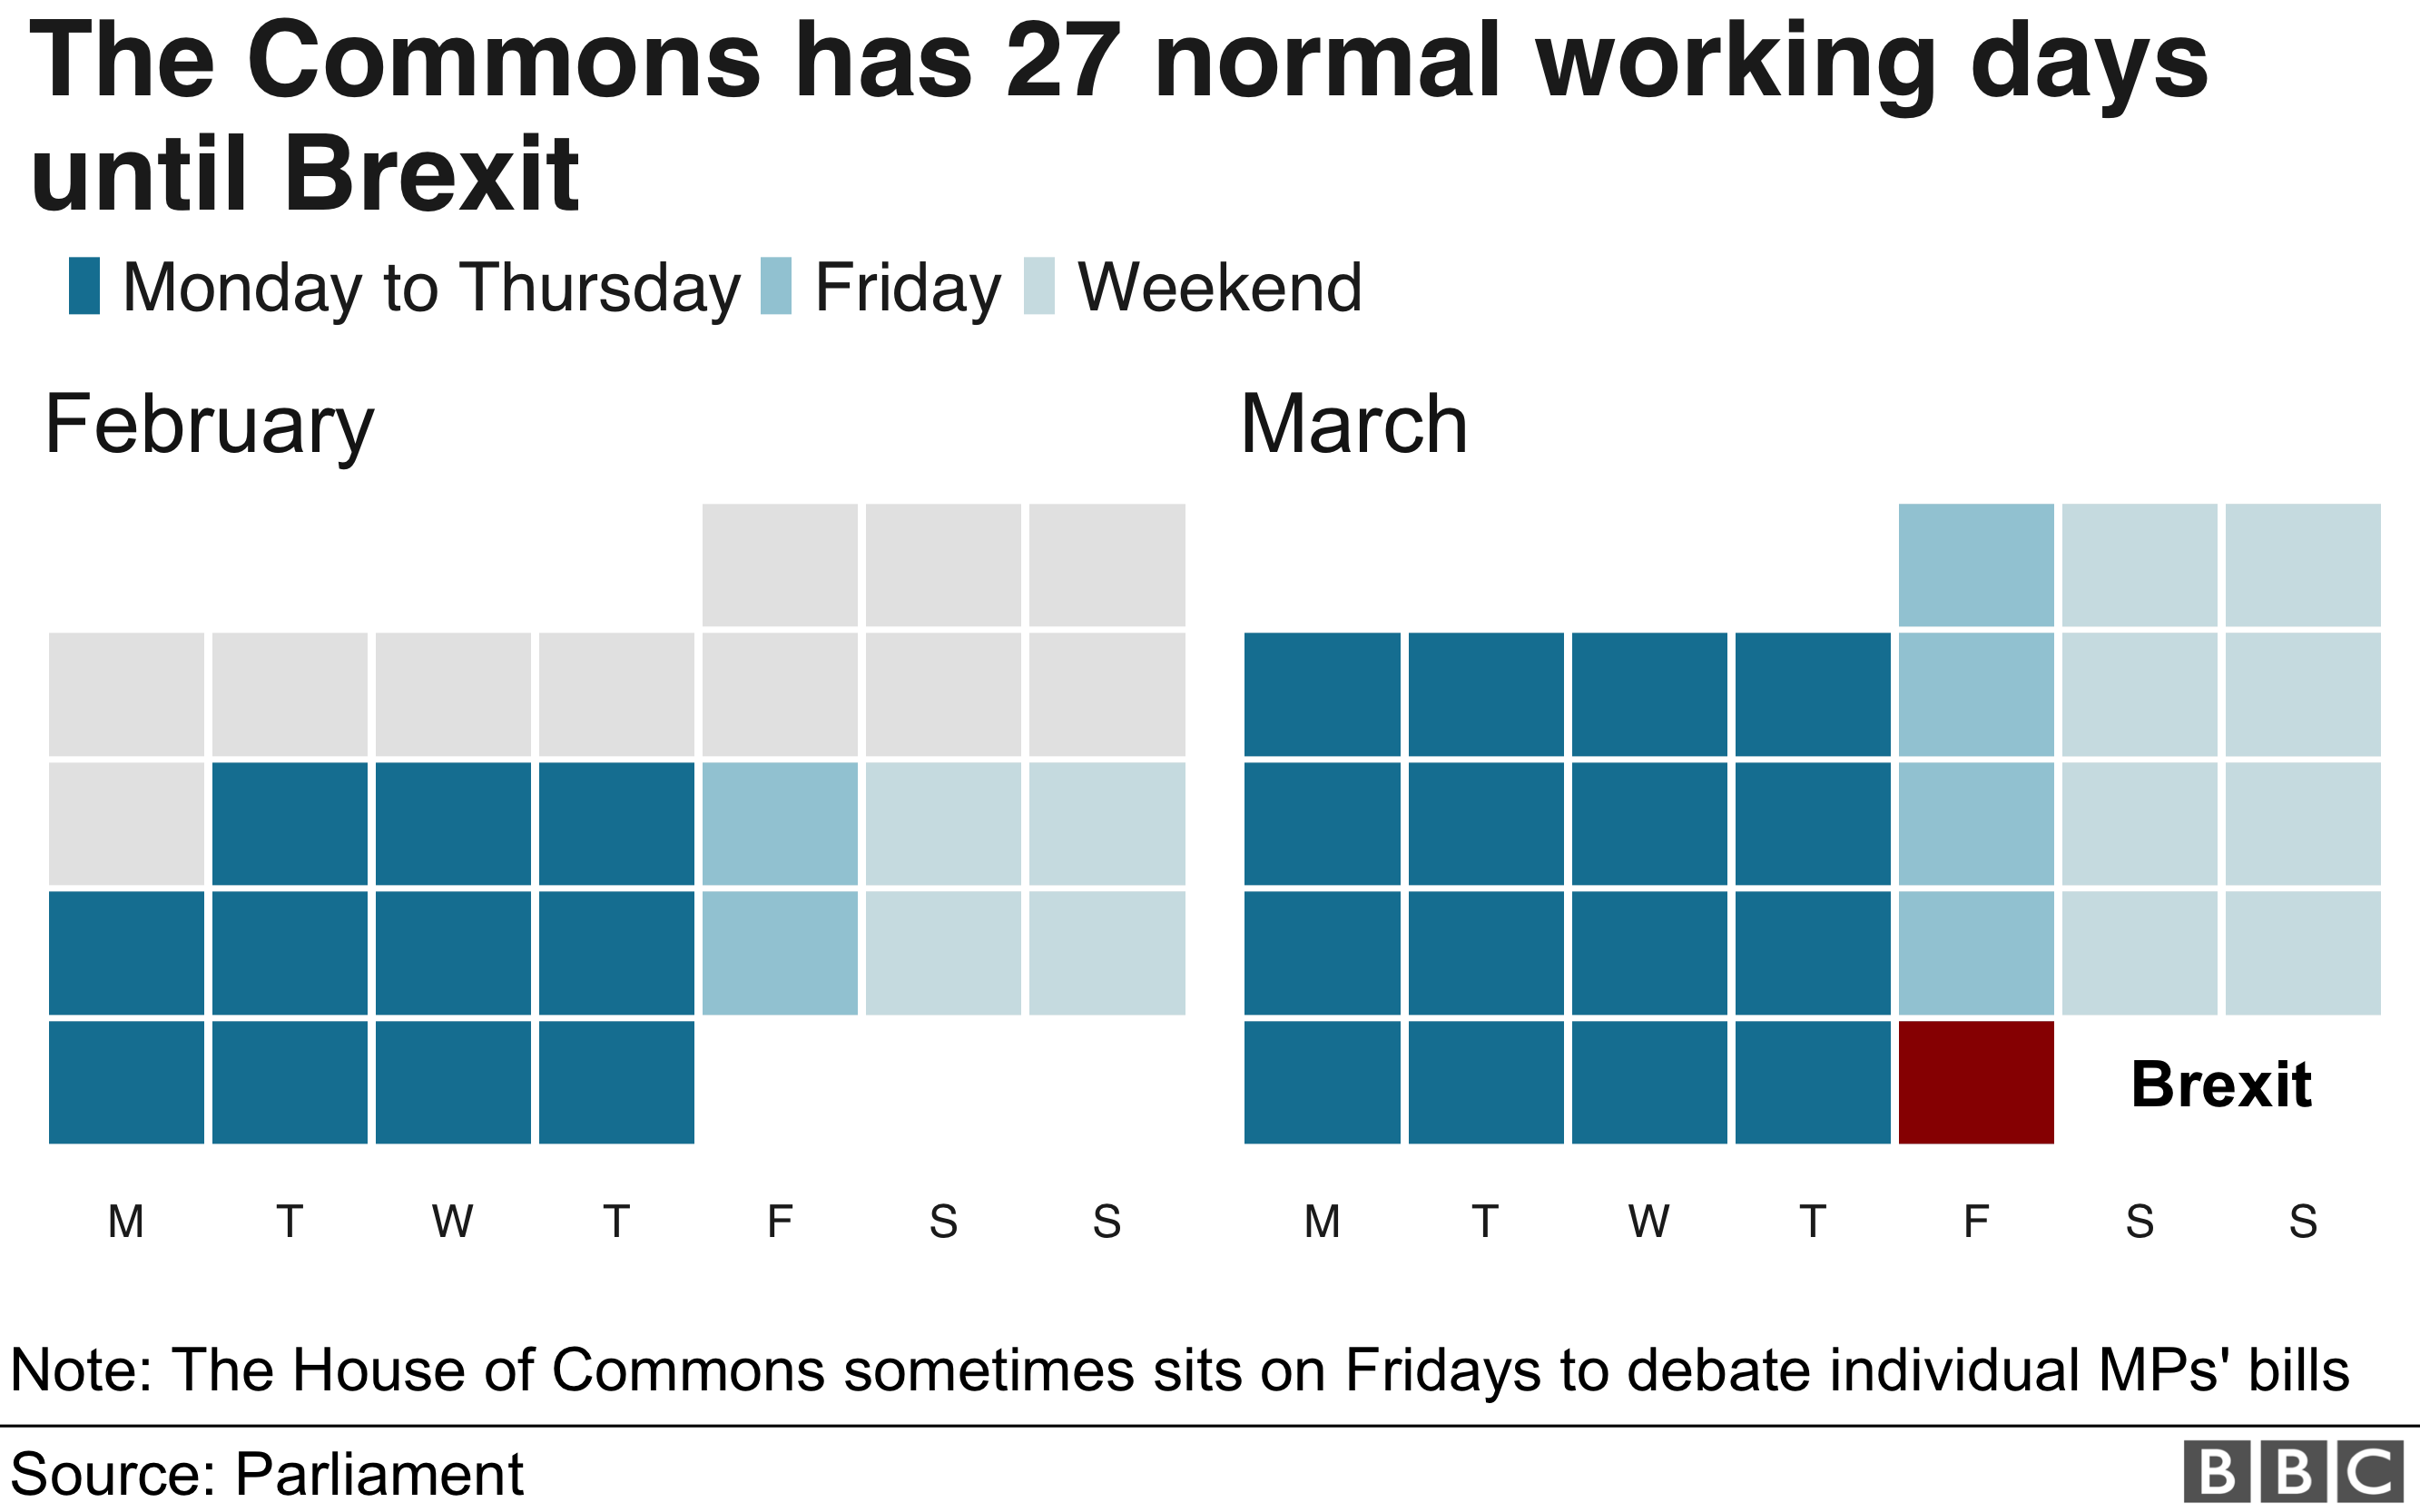 calendar of 27 Commons working days until Brexit